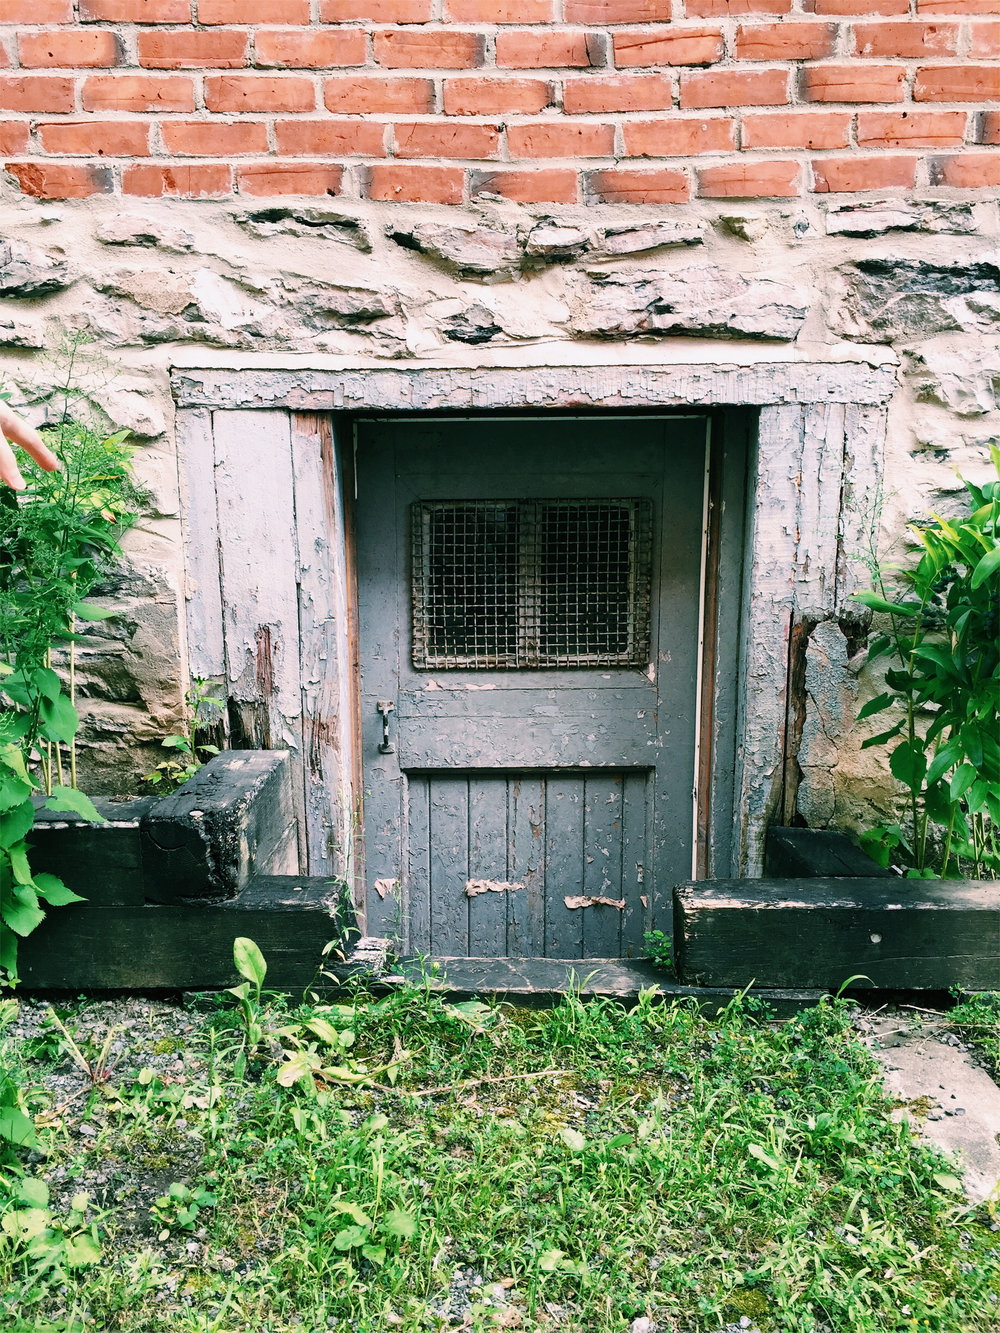 Duplex cellar door in NDG via Lora Weaver Mysteries by Katy Leen